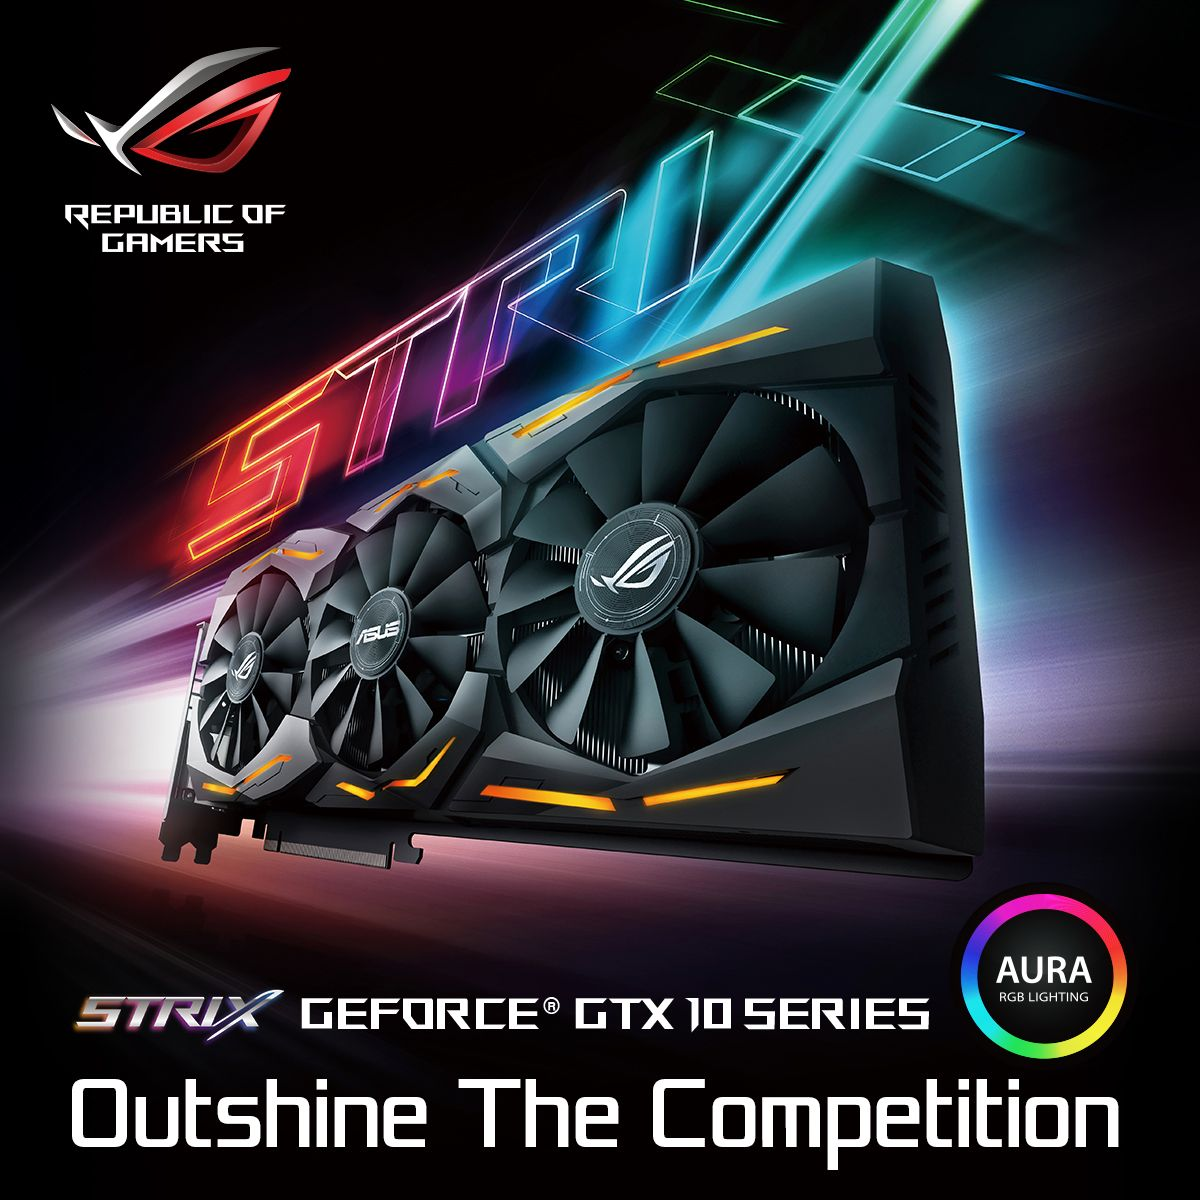 Time To Shine With The New Asus Rog Strix Geforce Gtx 1080 Graphics Card Bring Customizability To The Next Level With Aura Ligh Graphic Card Asus Asus Rog